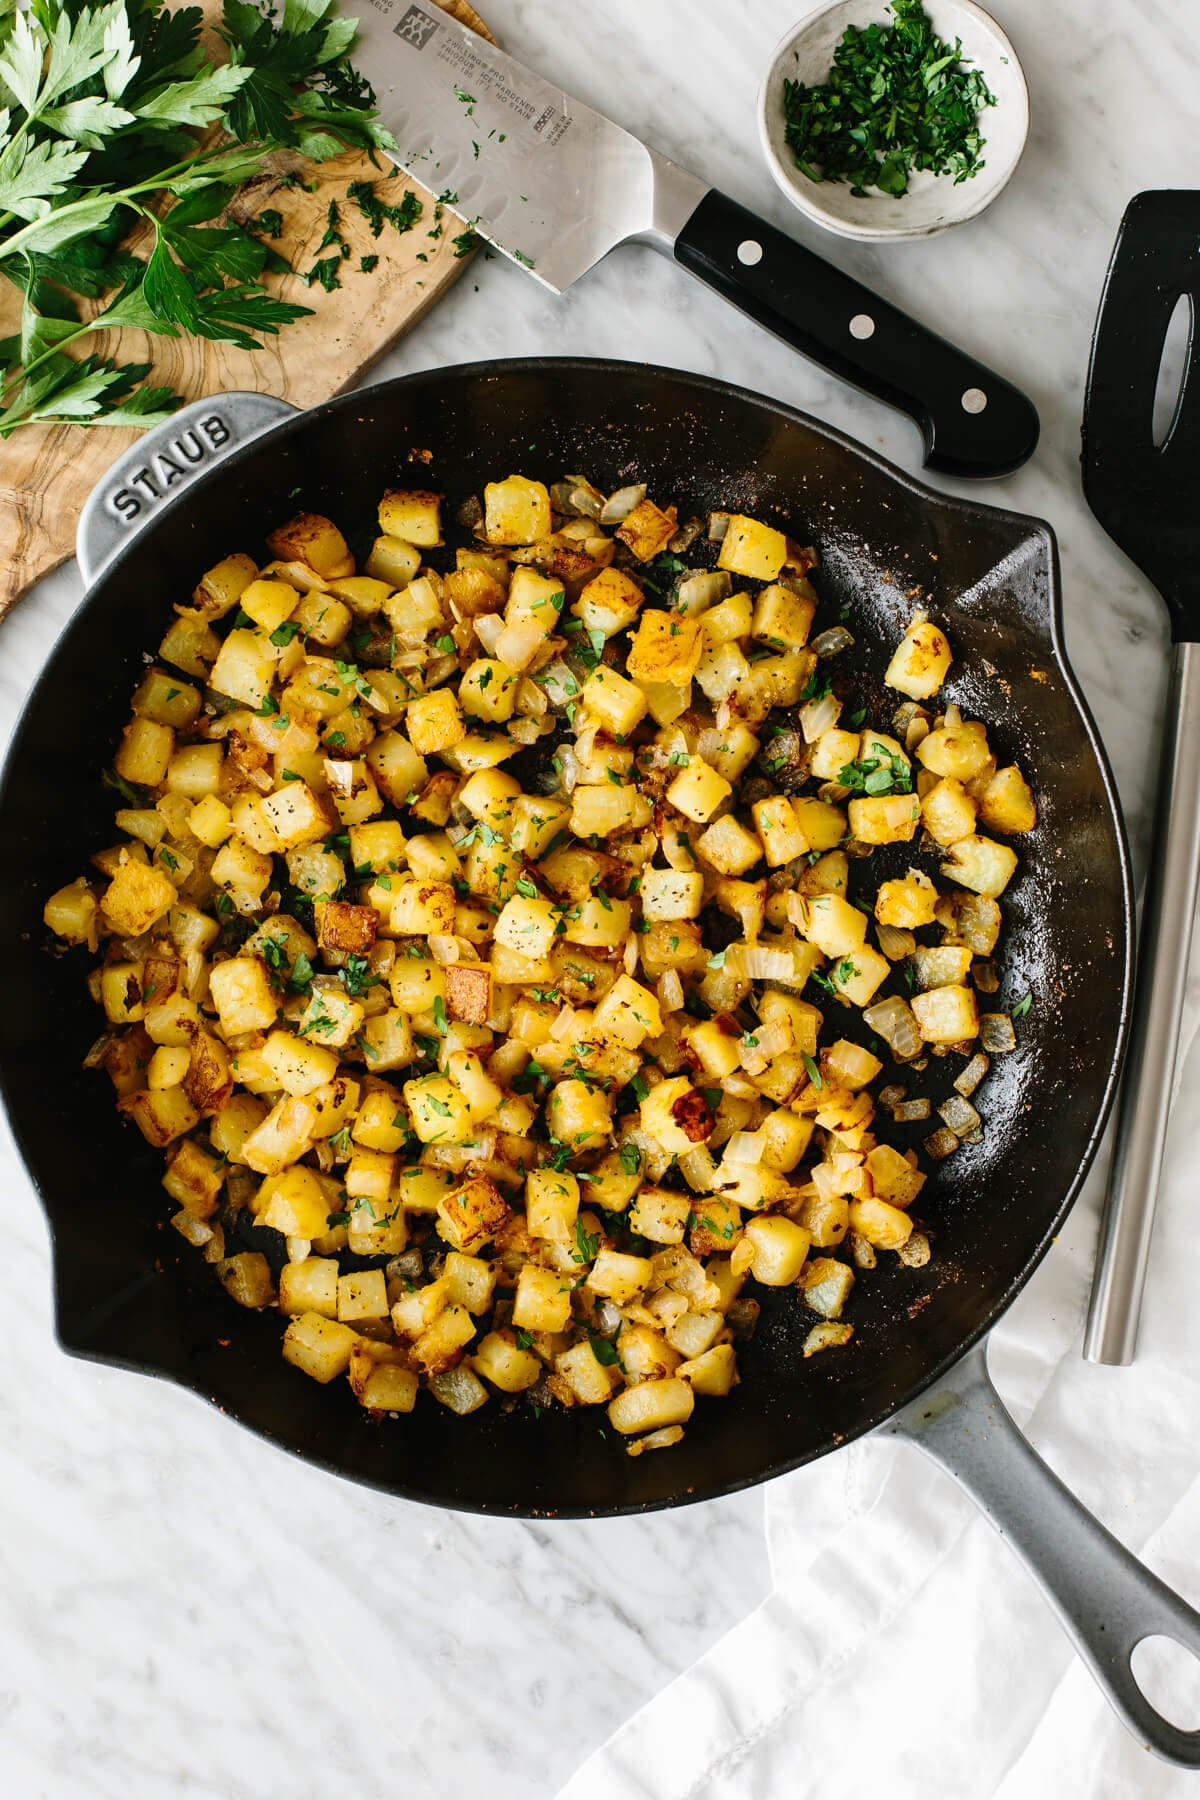 Breakfast potatoes in a skillet on a table.